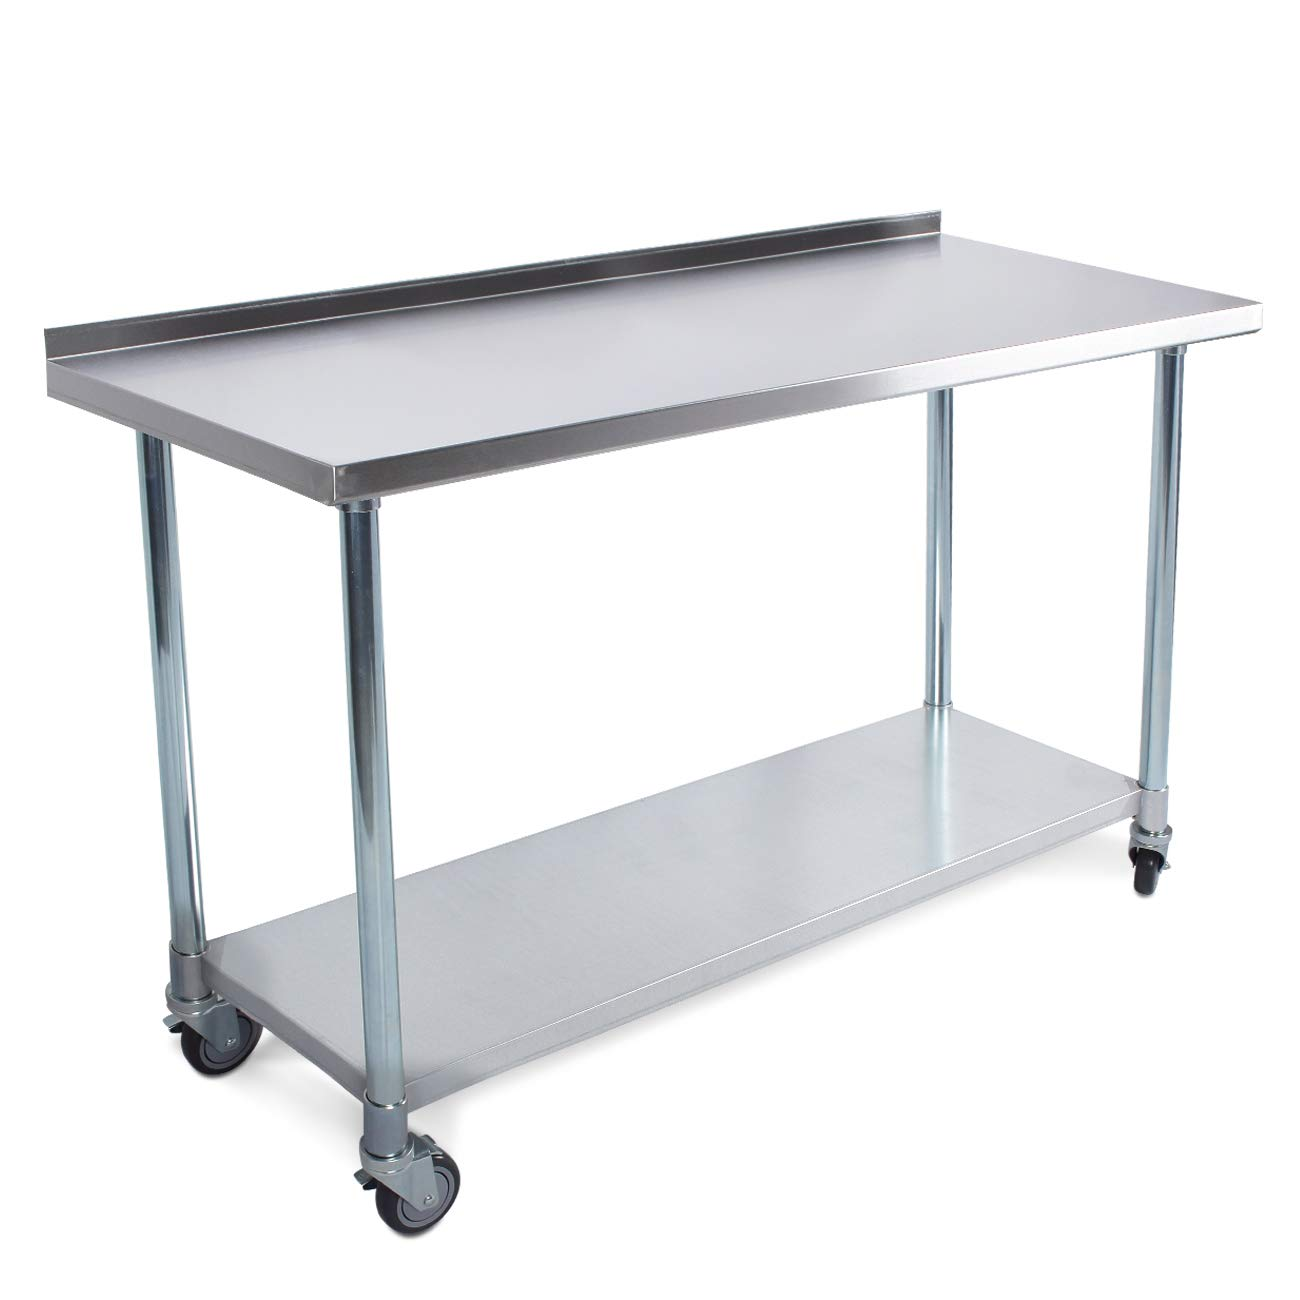 ARKSEN Universal Stainless Steel Storage NSF Undershelf Work Prep Table w/Backslash and Caster Wheels, 48 in x 24 in